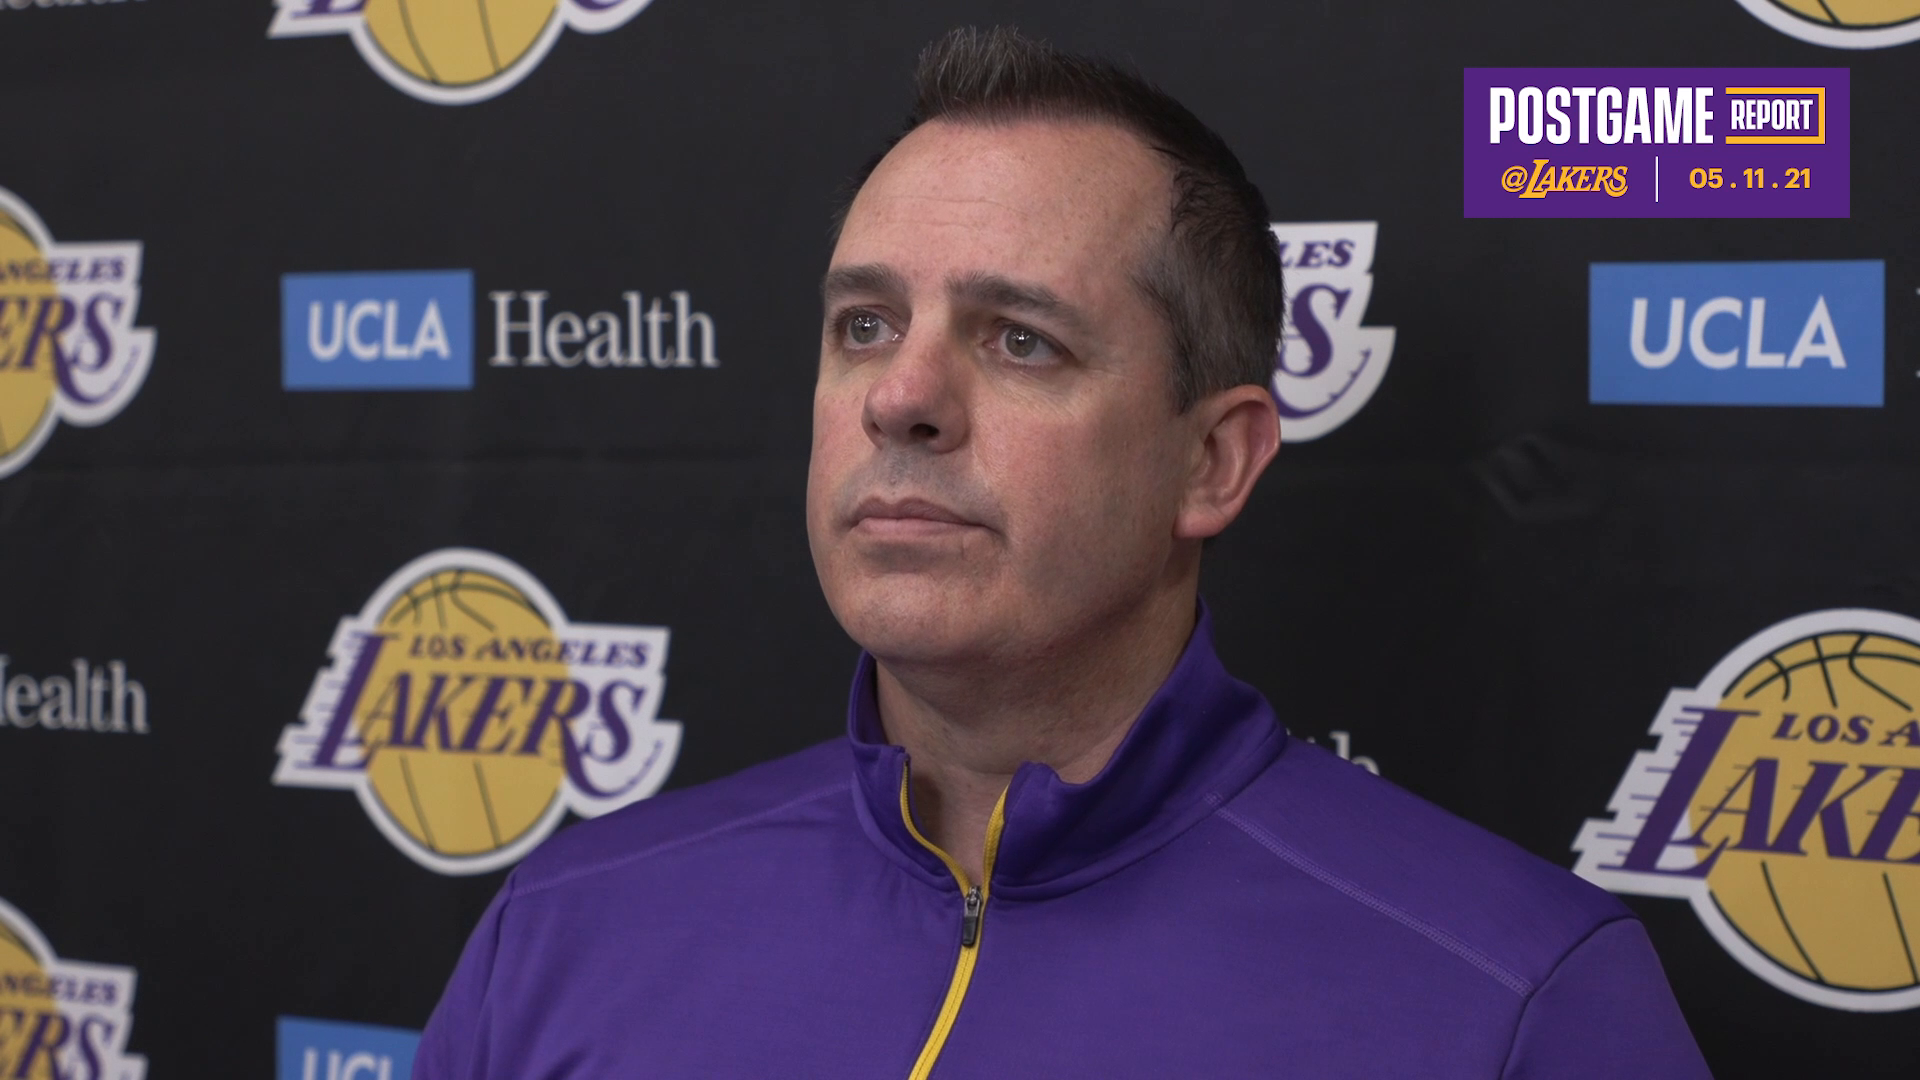 Lakers Postgame: Frank Vogel (5/11/21)